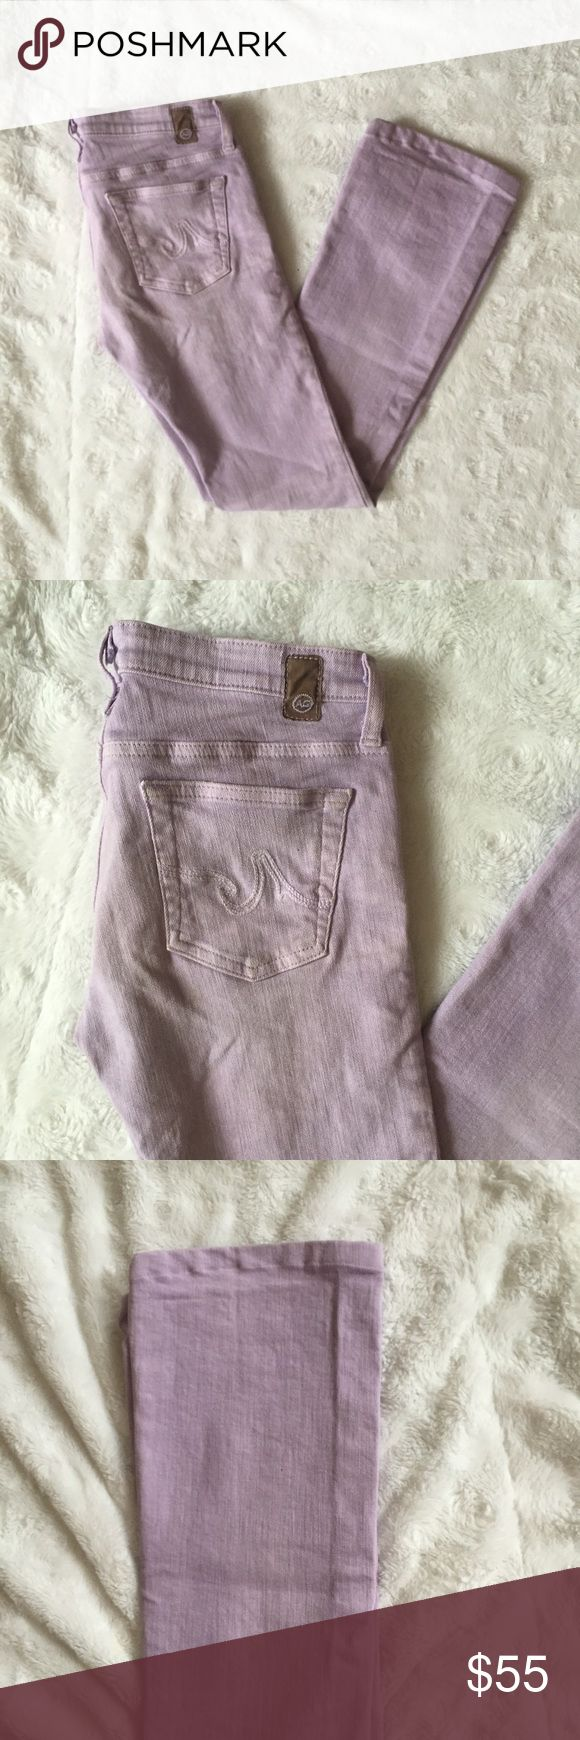 AG Adriano Goldschmied The Angel Lavender Jeans AG Adriano Goldschmied The Angel Lavender Jeans size 26R Bootcut jeans AG Adriano Goldschmied Jeans Boot Cut